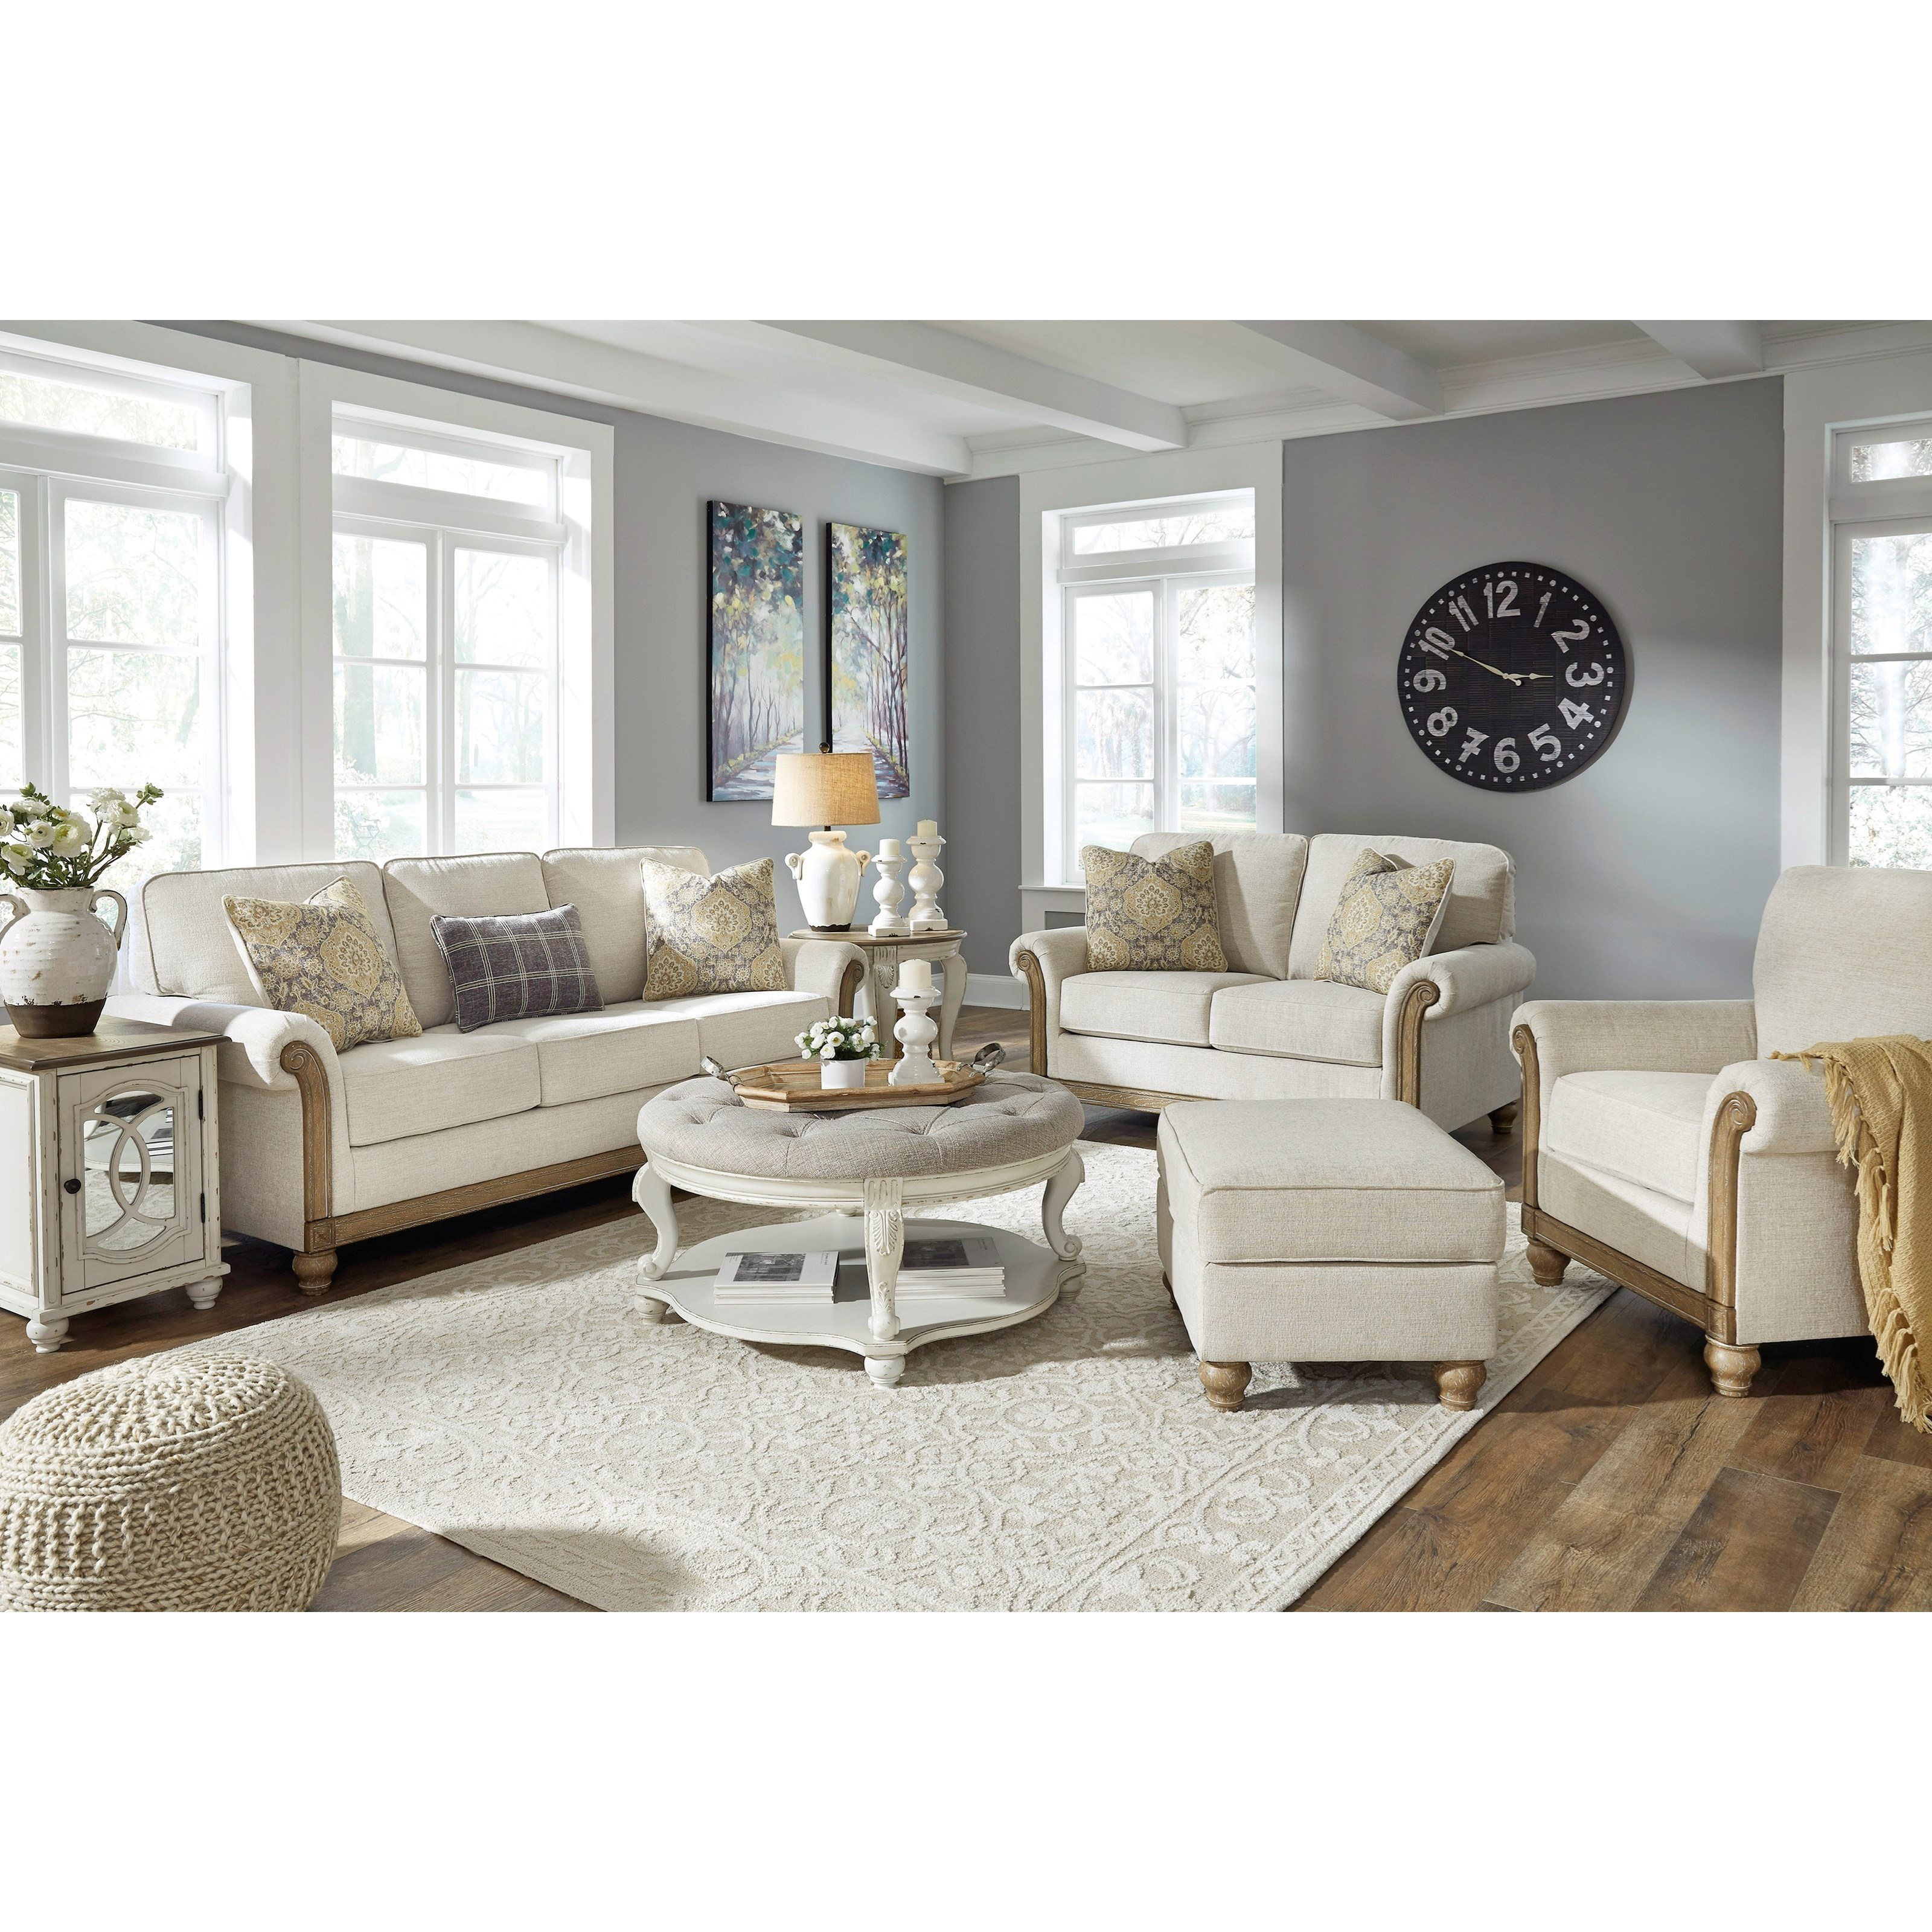 Stoneleigh  4pc living room group by Benchcraft at Value City Furniture